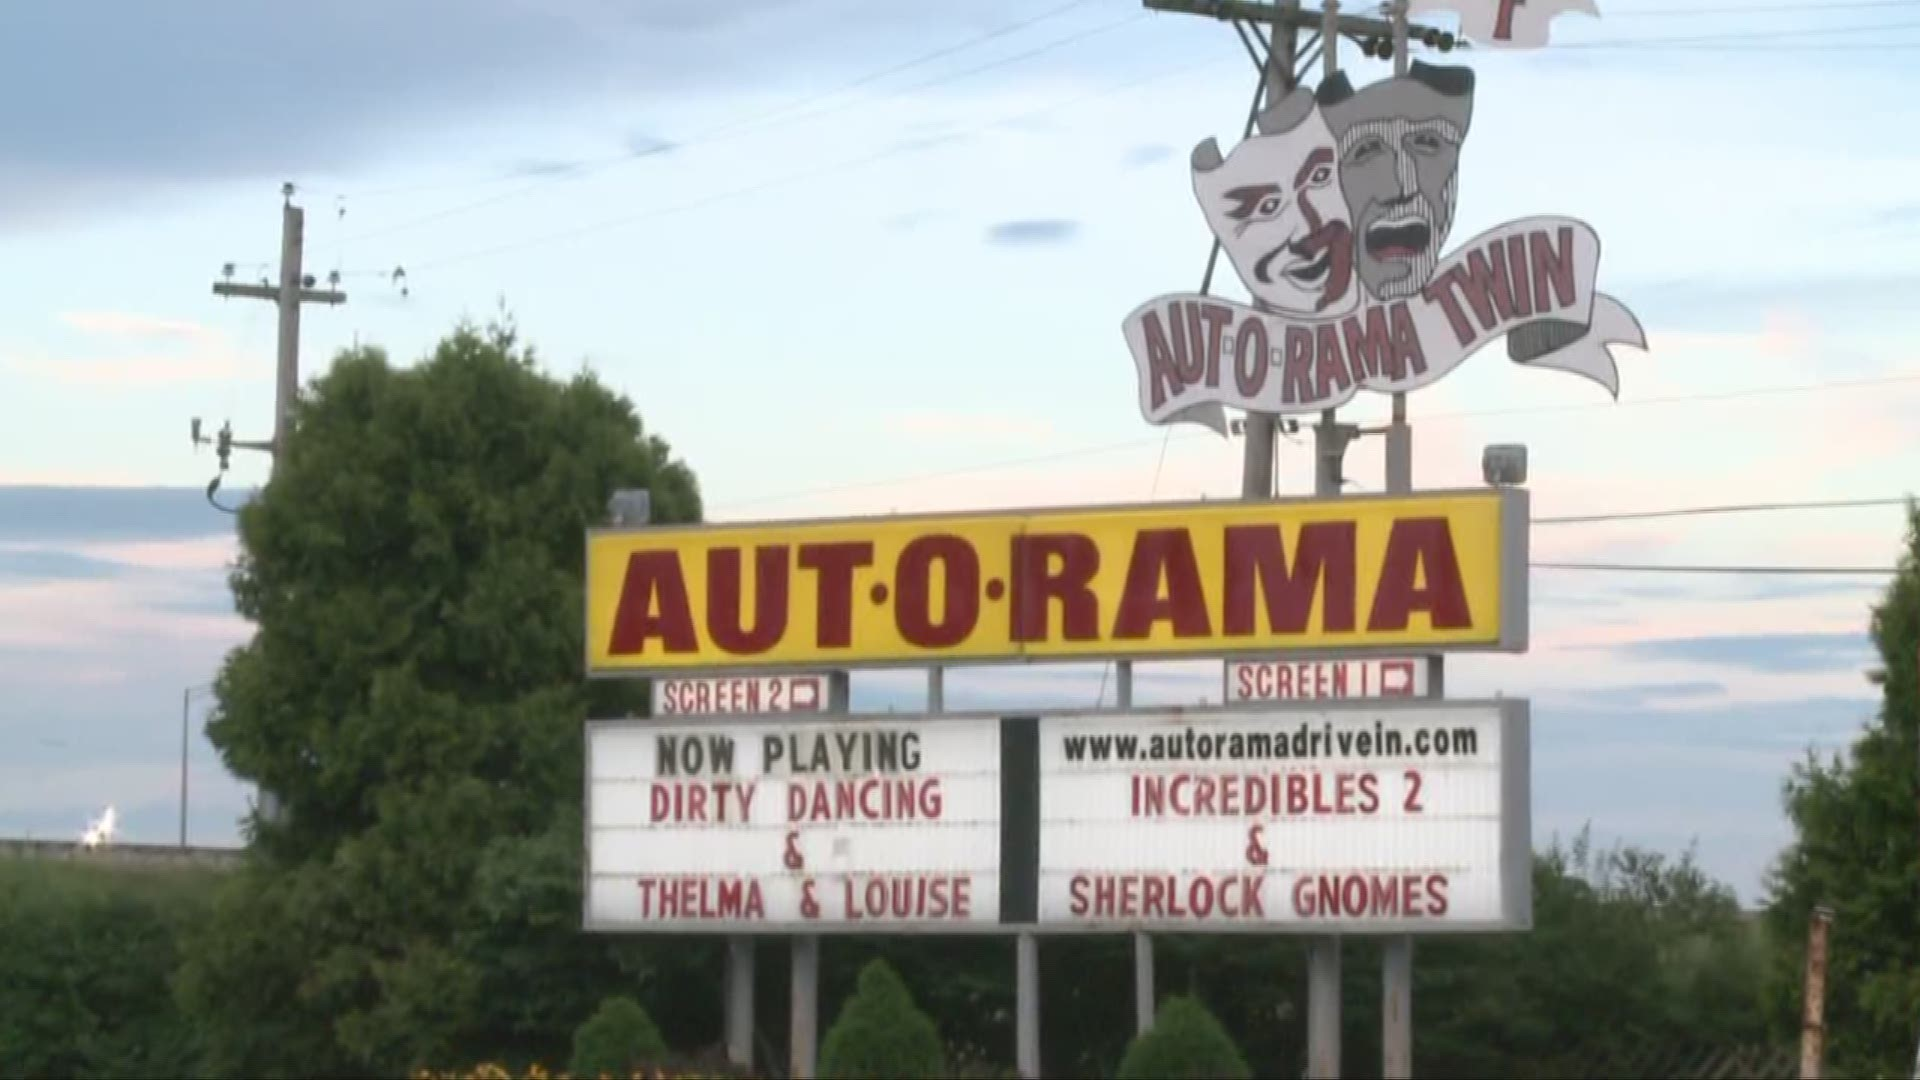 Aut O Rama Drive In Movie Theater Planning To Open On May 12 Wkyc Com